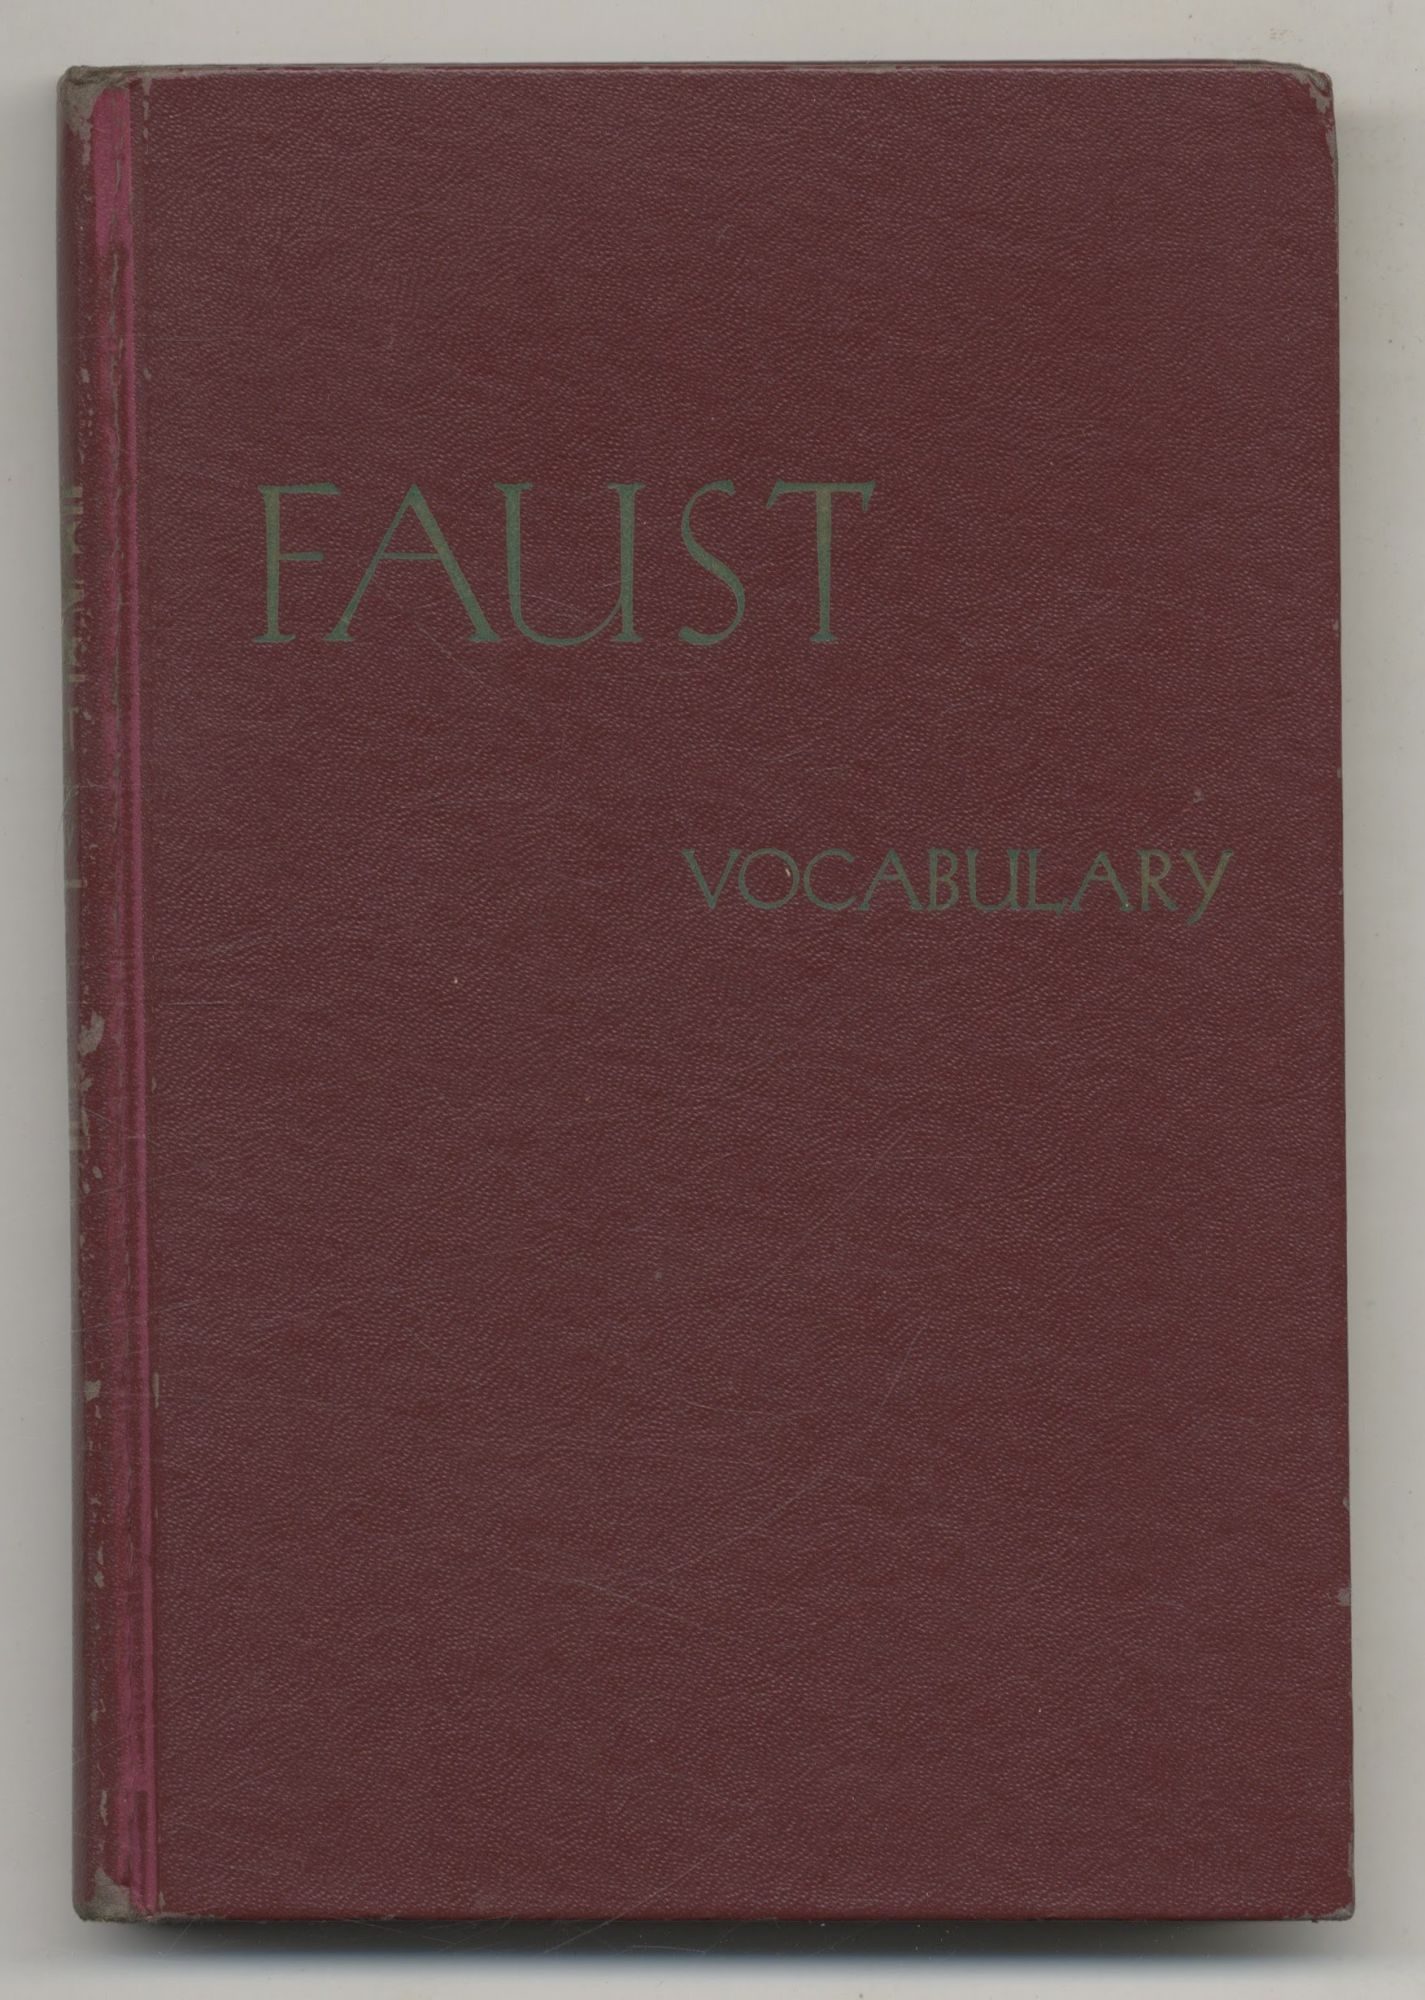 Goethe's Faust A Complete German-english Vocabulary. Helmut Rehder R-M S. S. Heffner, W. F. Twaddell.